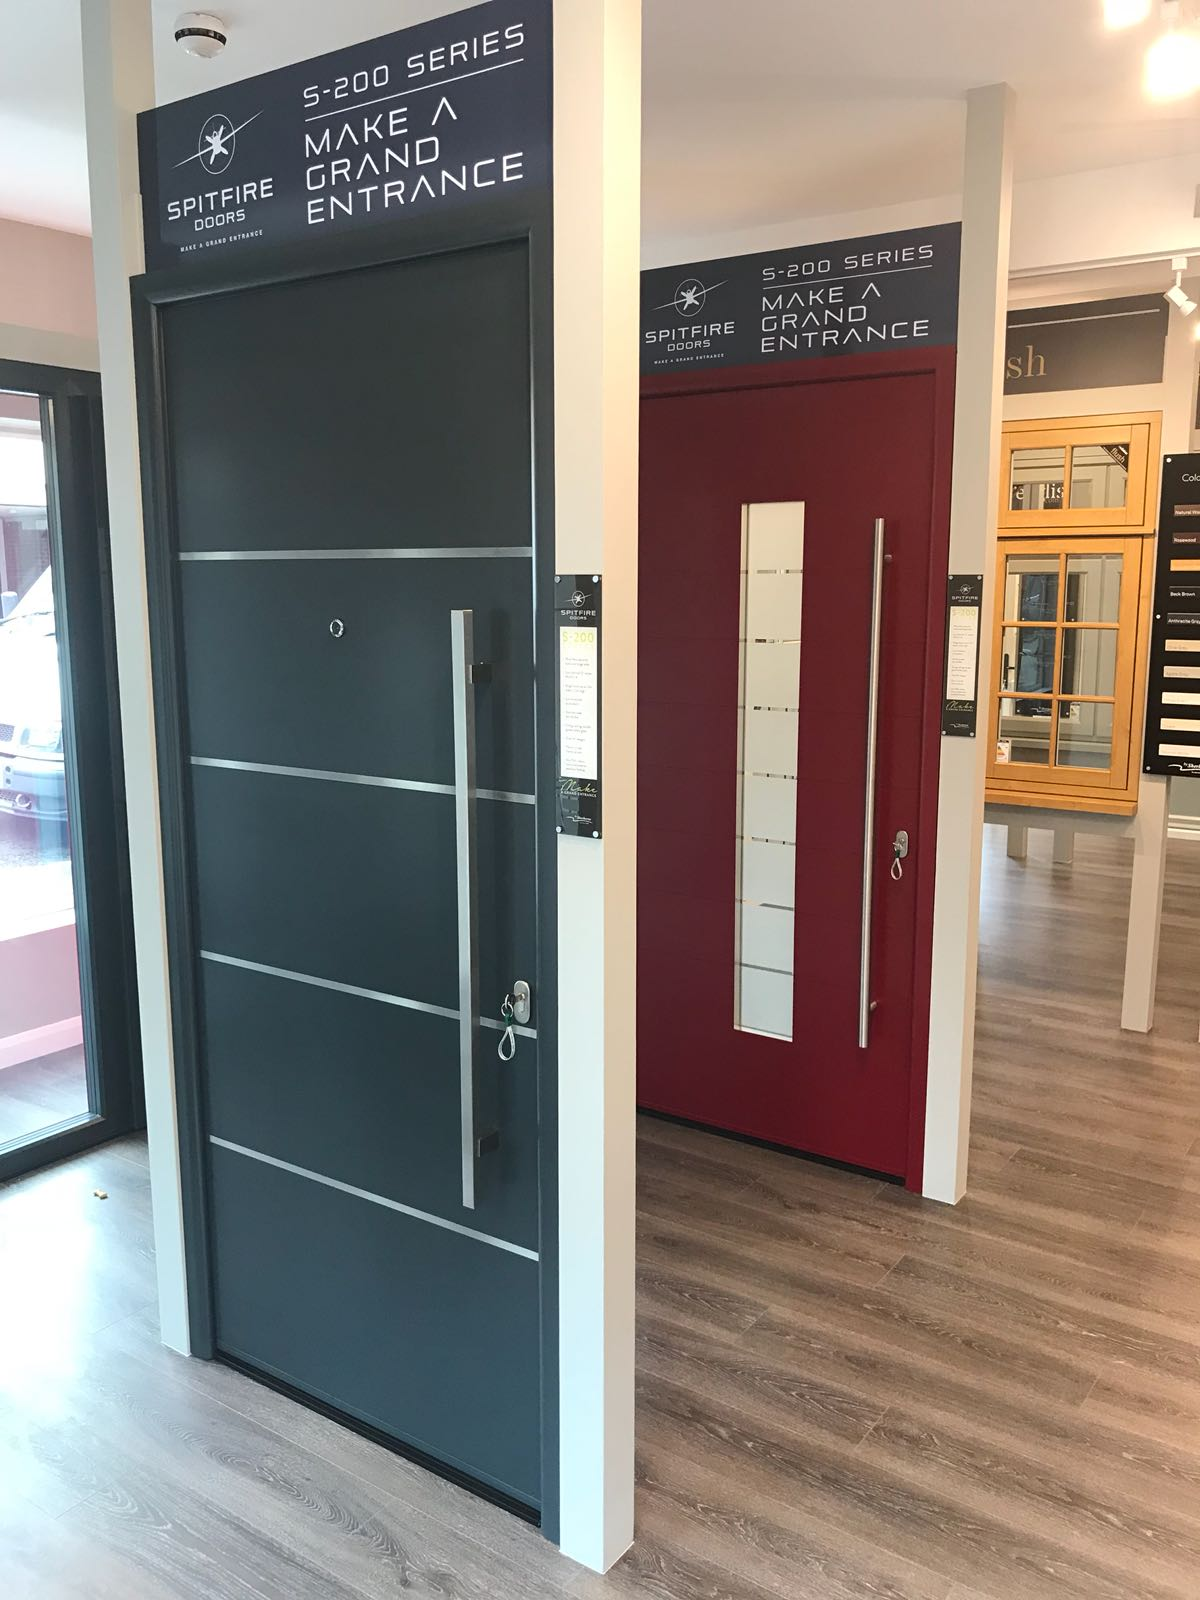 Spitfire Doors on display in Farnborough showroom